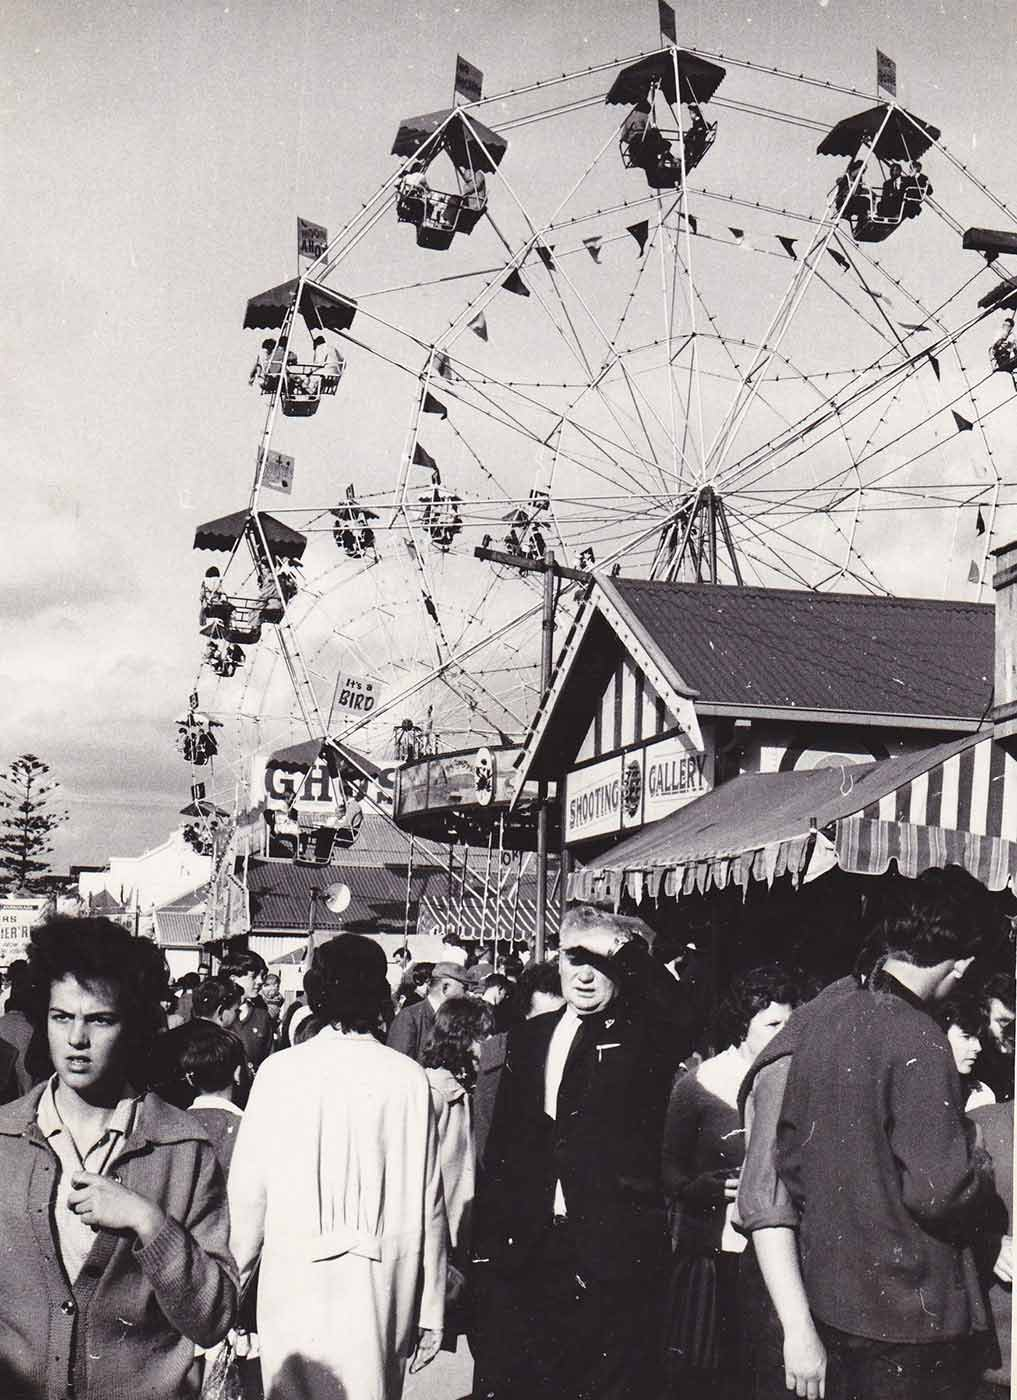 Black and white photo showing a ferris wheel in the distance and a group of people walking down sideshow alley in the foreground. - click to view larger image